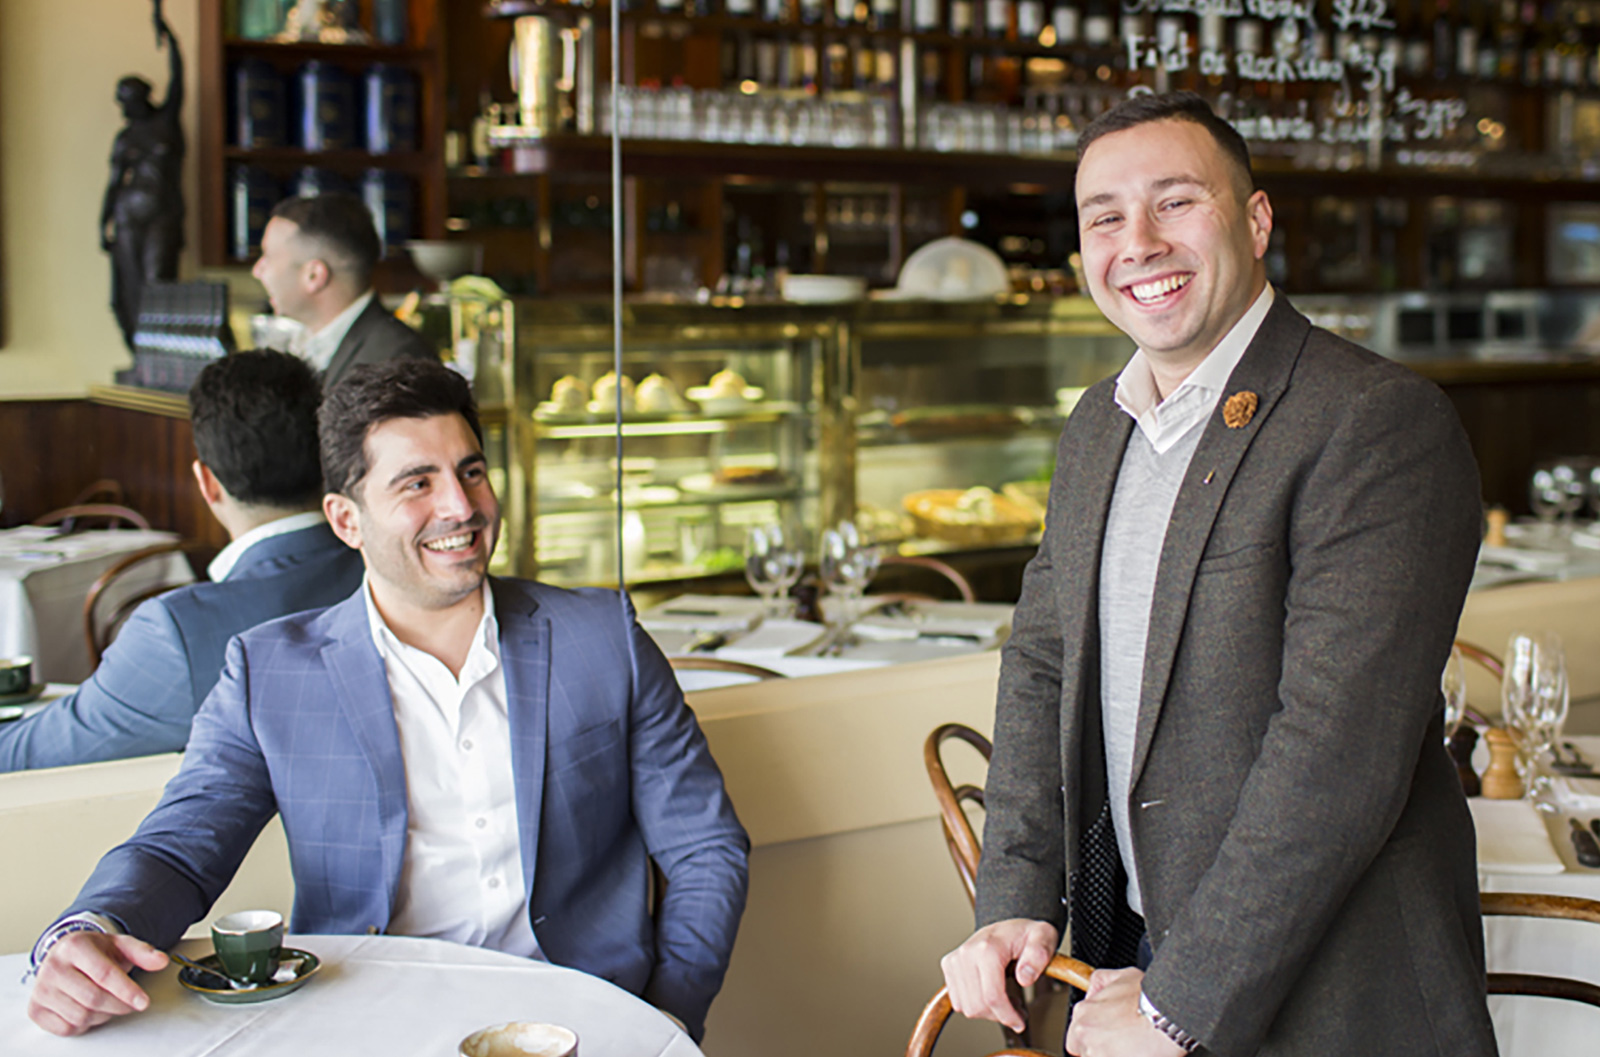 From record-breaking in Bayside to the sublime in Toorak, meet the team behind Melbourne's Samuel Property